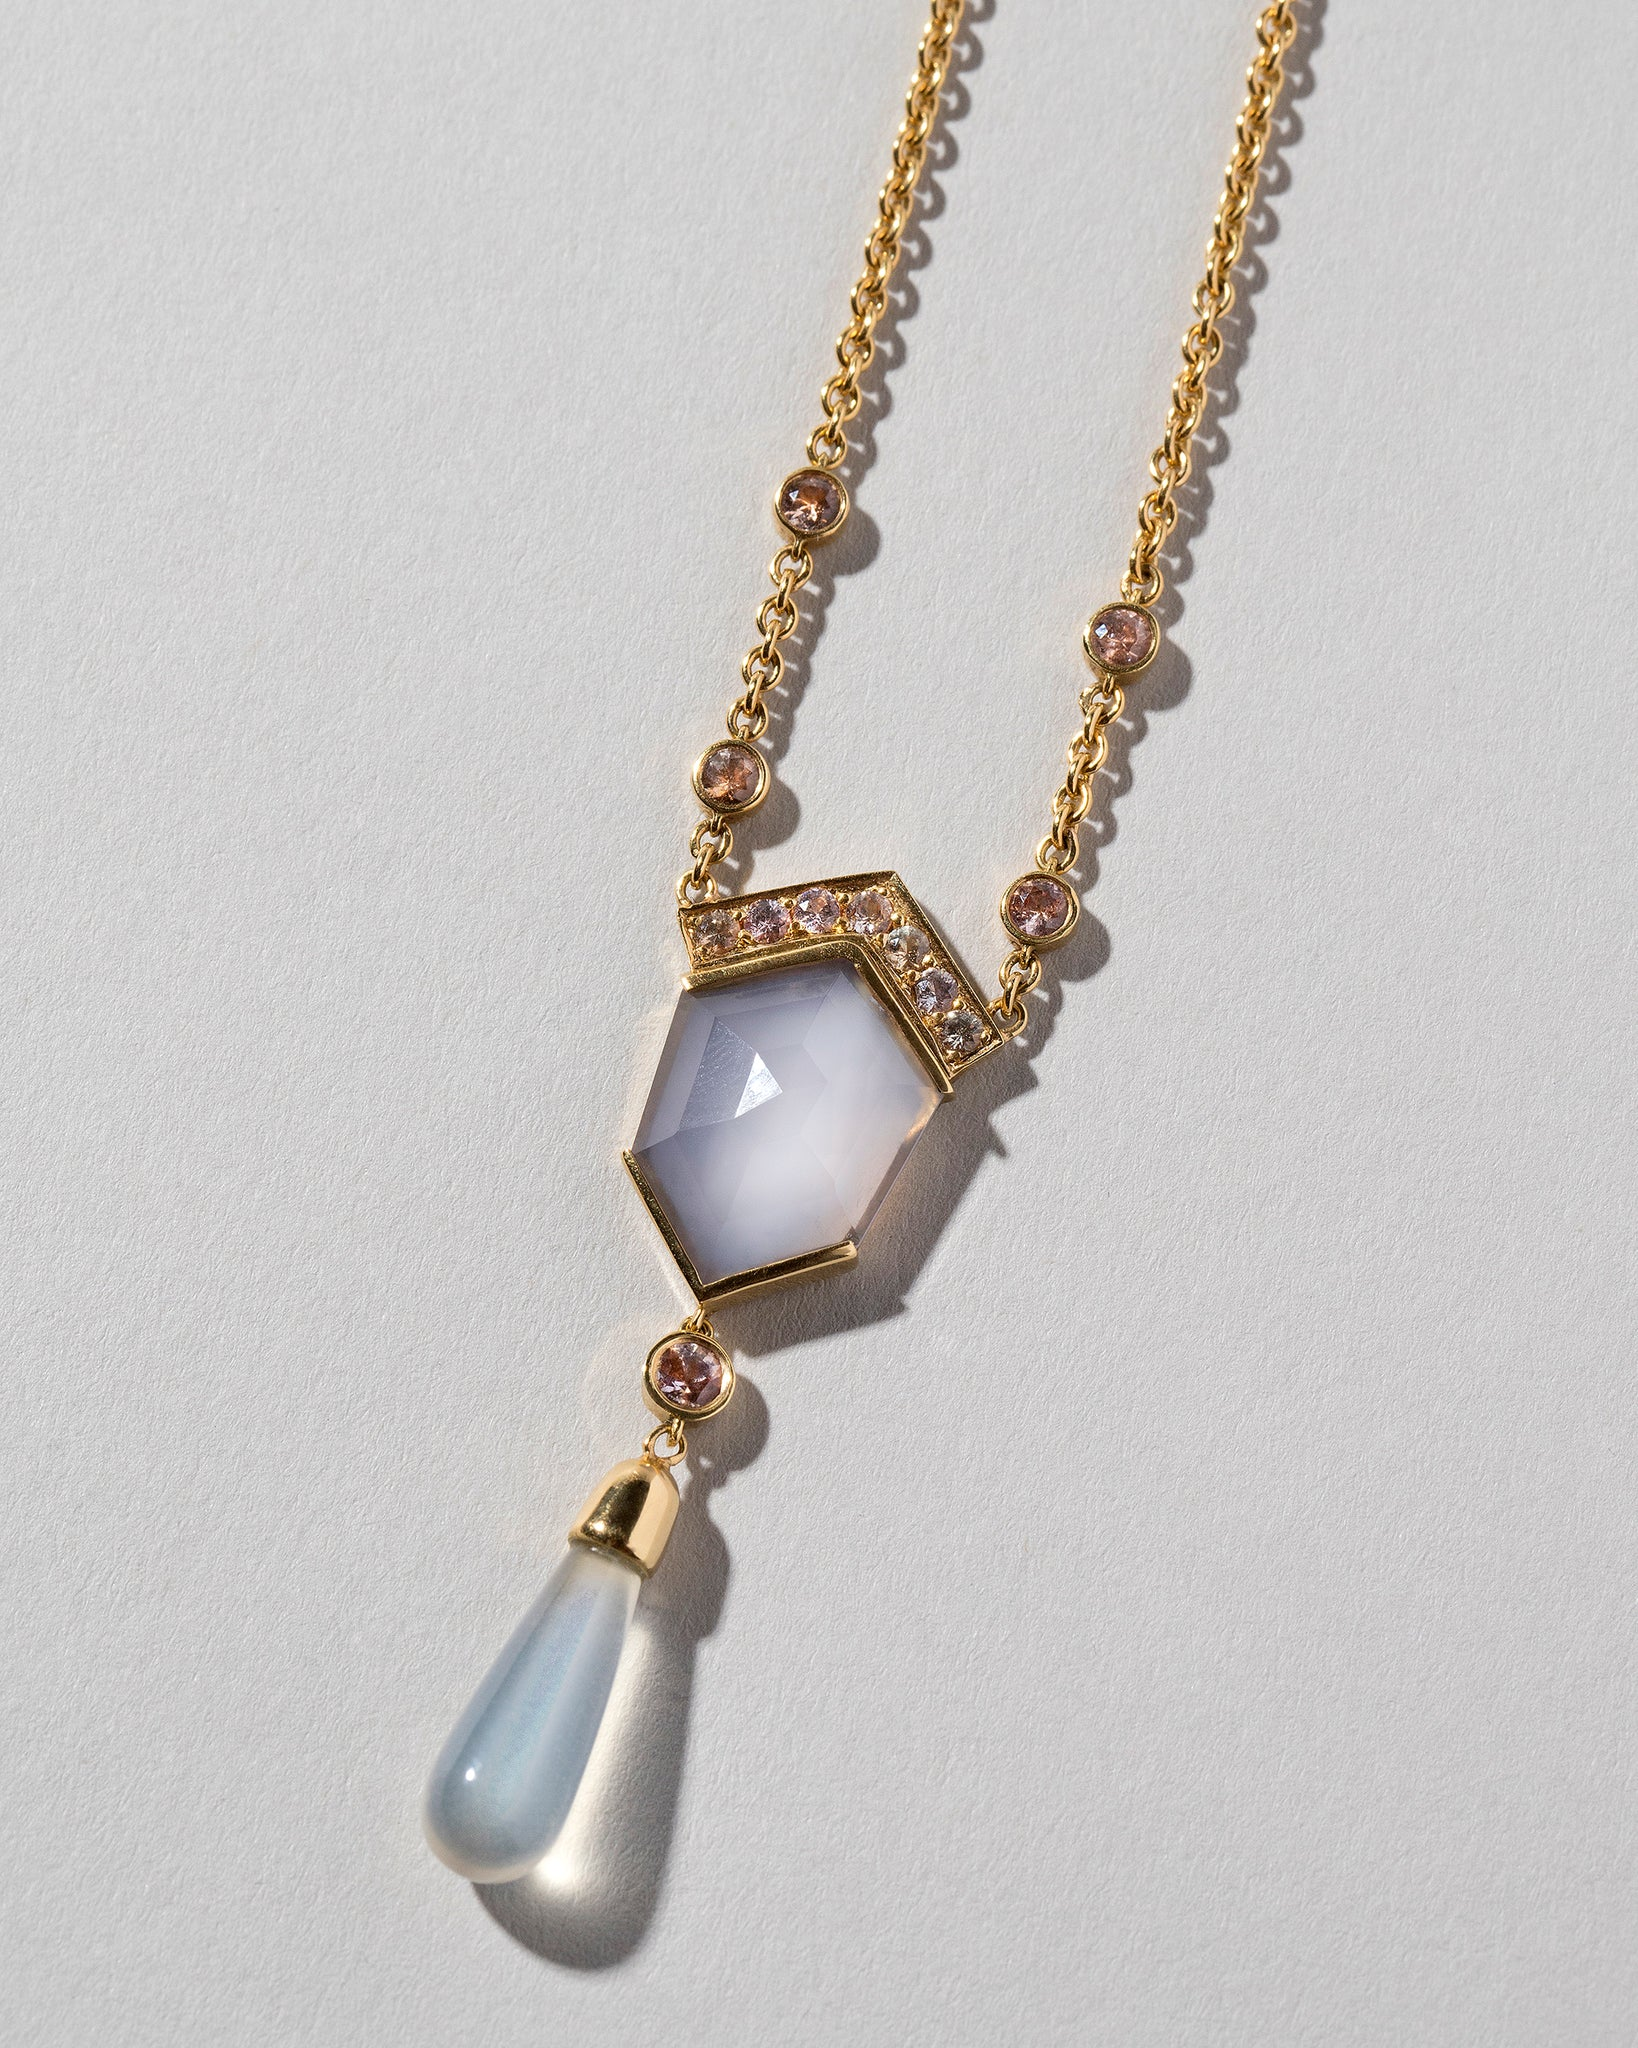 Blue Chalcedony Kite Necklace Laid Flat